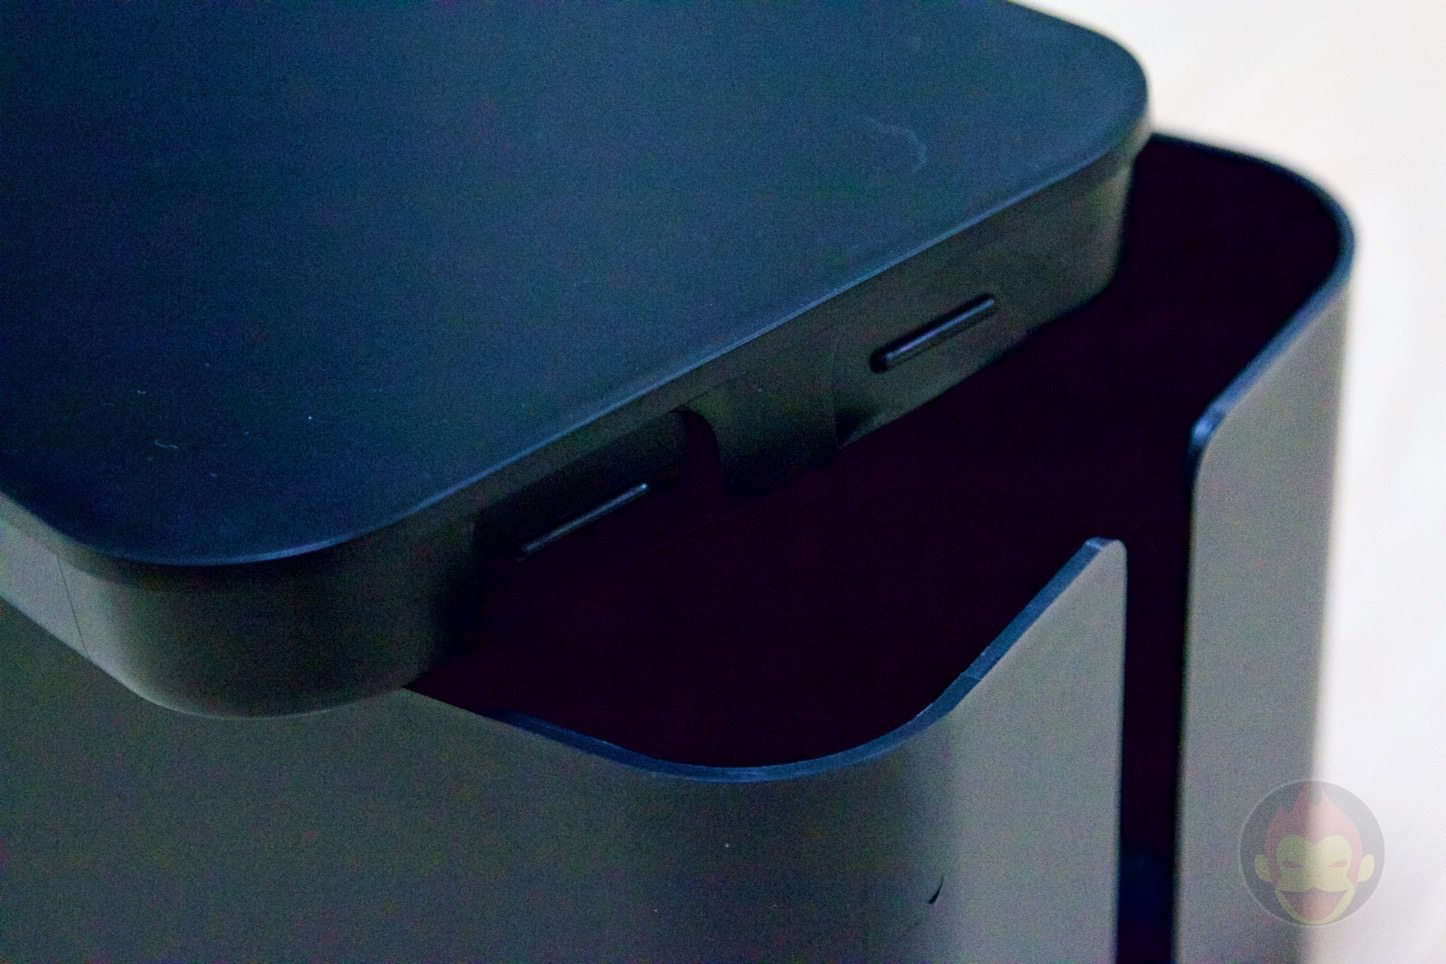 Bluelounge-The-CableBox-07.jpg